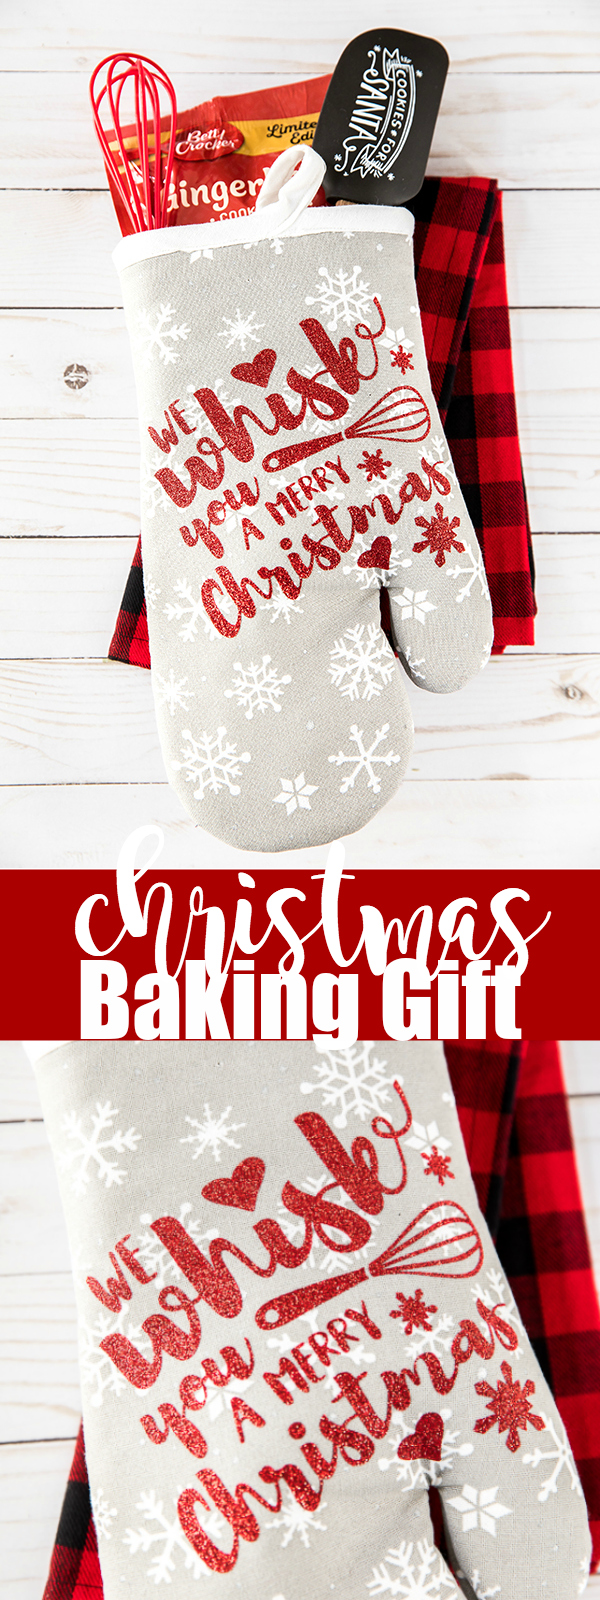 "Holiday Baking Oven Mitt Gift – ""We Whisk You A Merry Christmas"" handmade Christmas oven mitt gift."